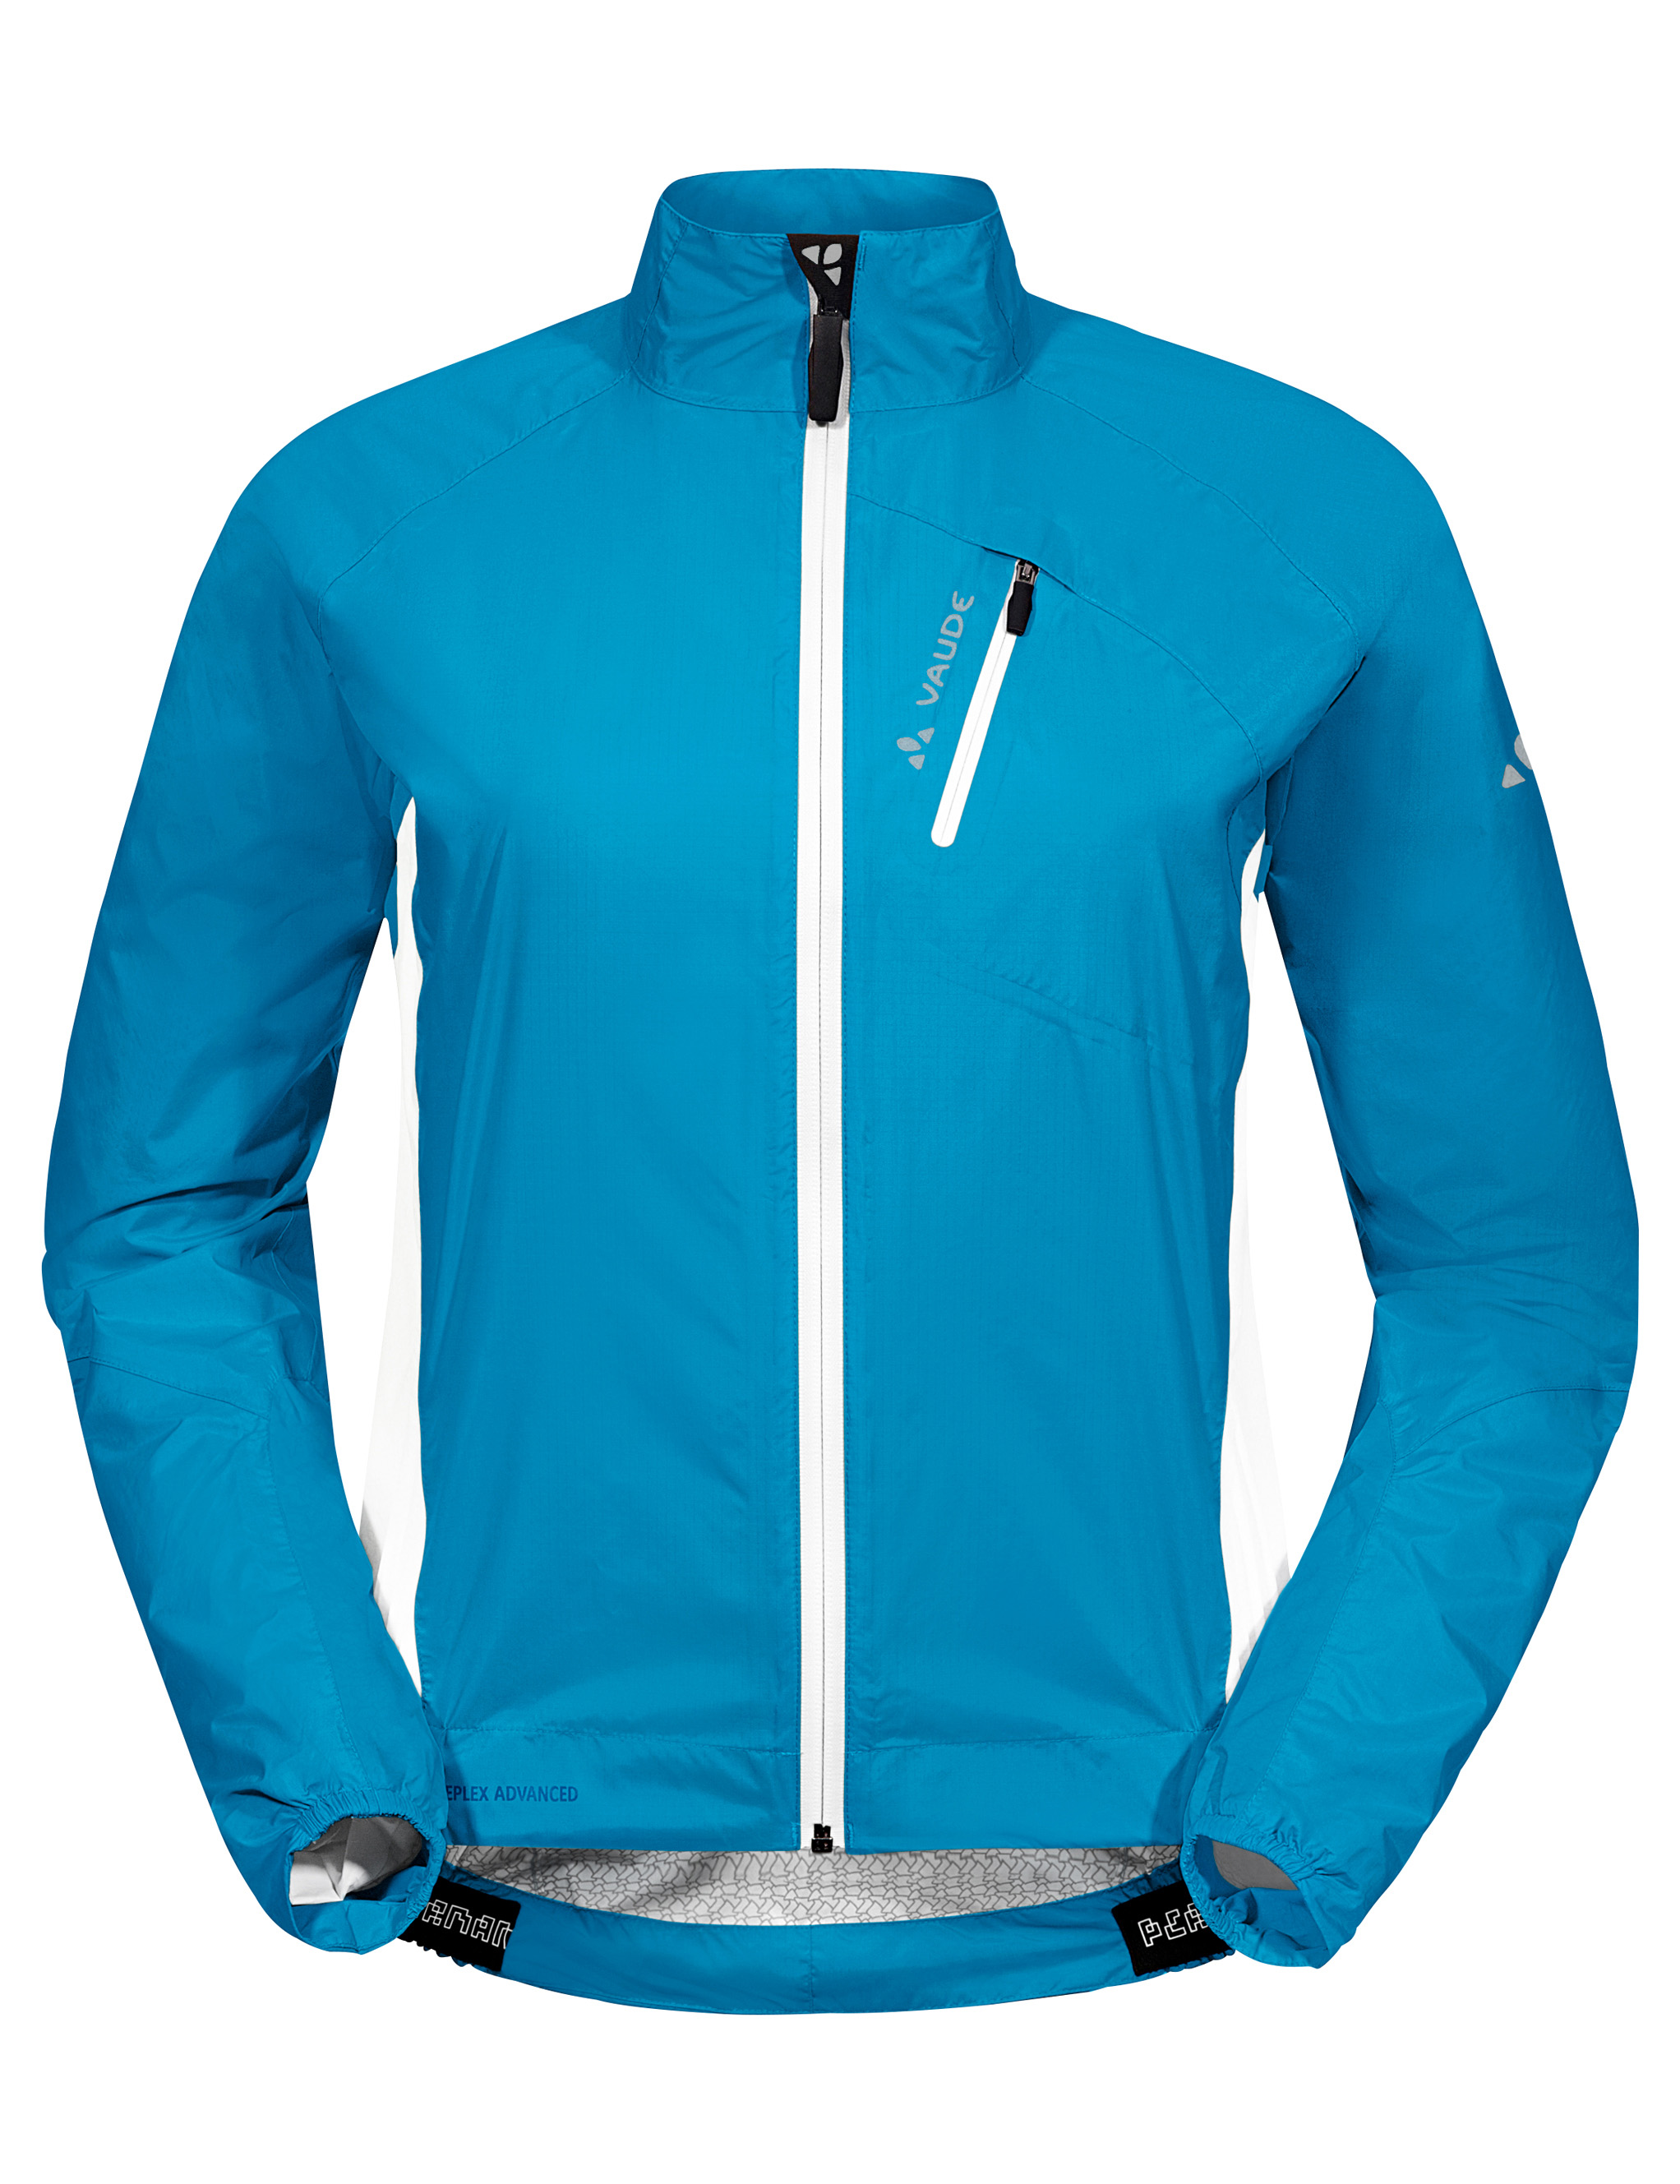 VAUDE Women´s Spray Jacket IV spring blue Größe 36 - schneider-sports